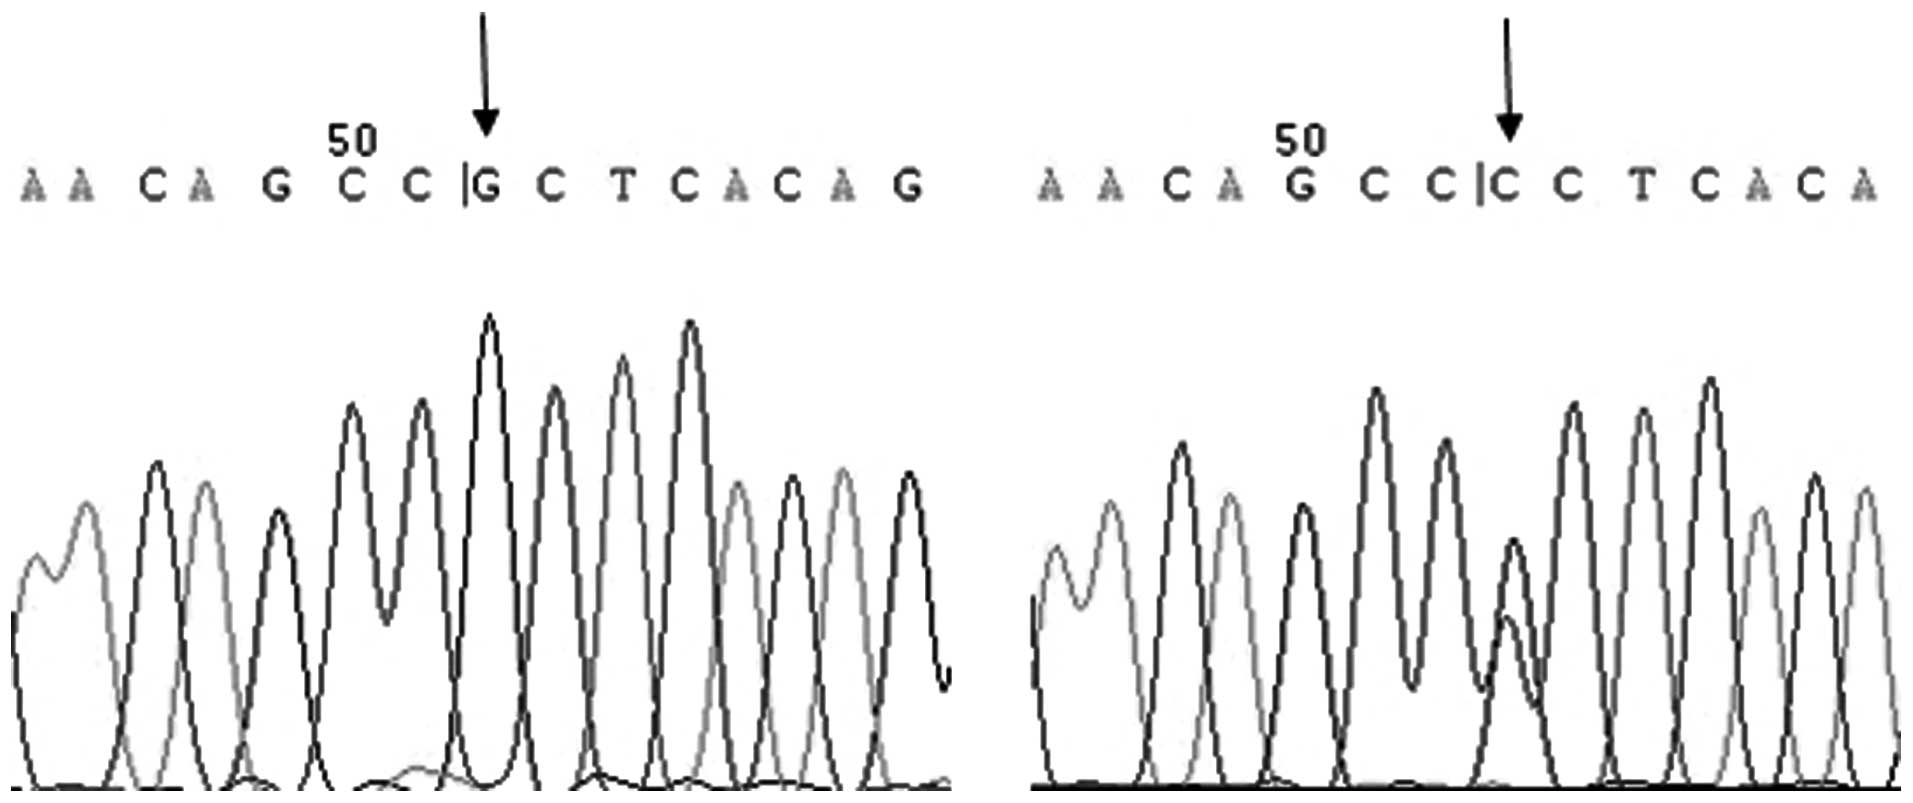 Single Nucleotide Polymorphisms In Interleukin 6 And Their